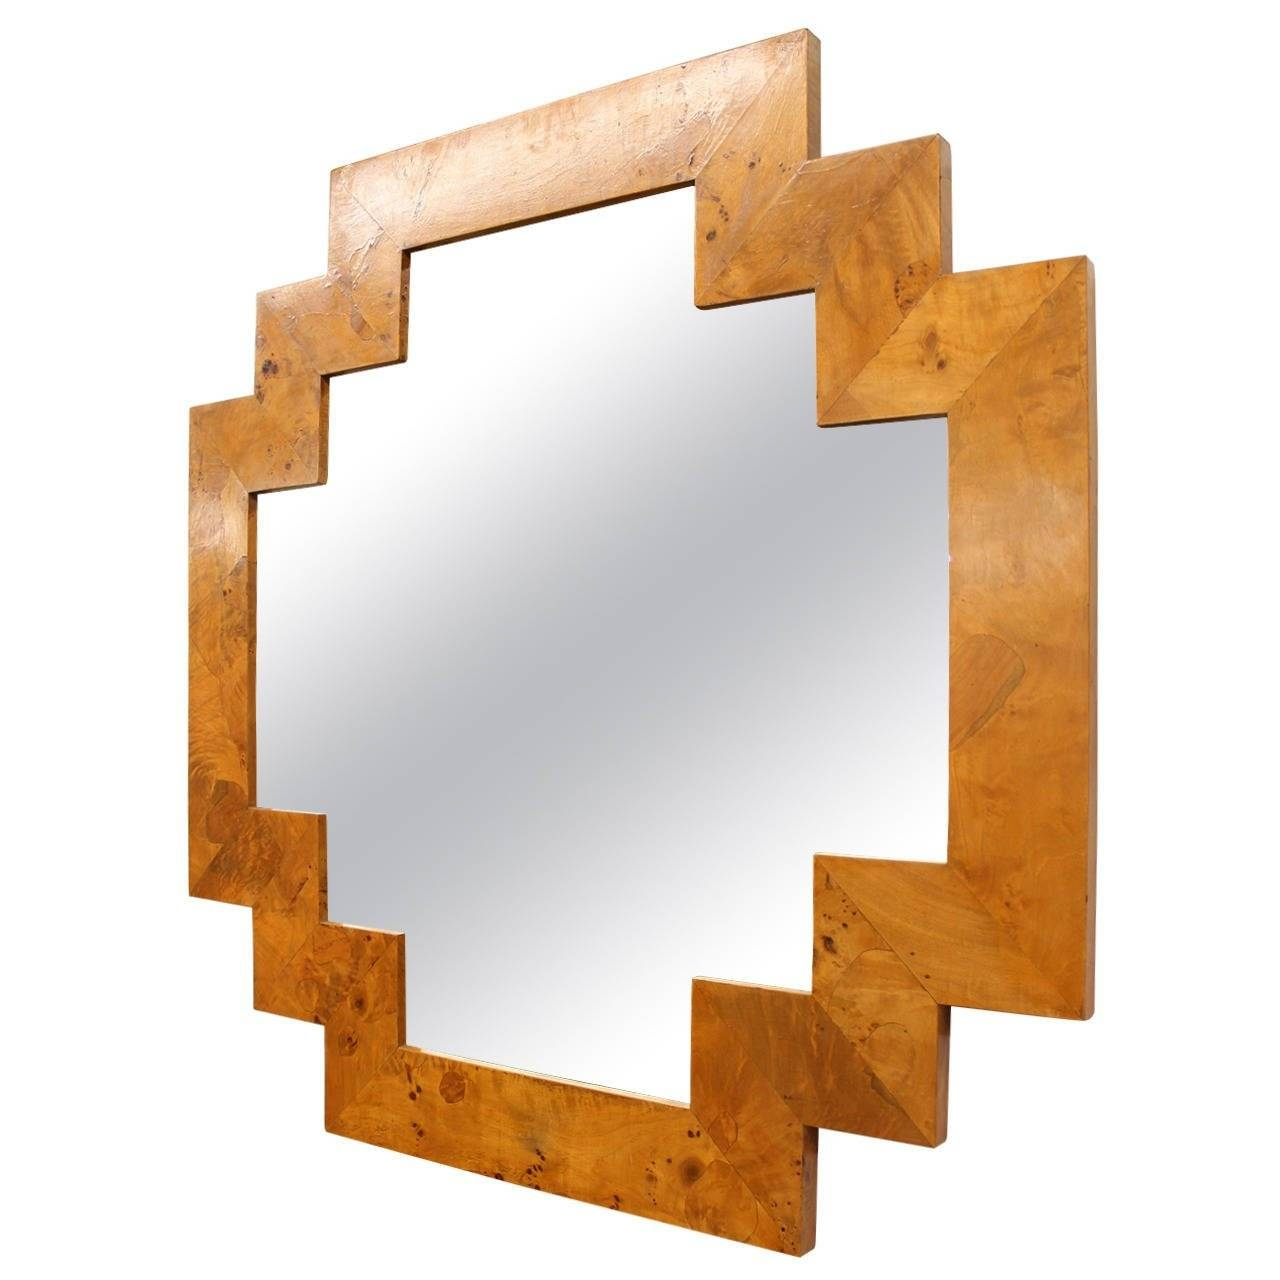 Art Deco Style Geometric Italian Burl Wood Wall Mirror At 1Stdibs pertaining to Art Deco Mirrors (Image 7 of 25)